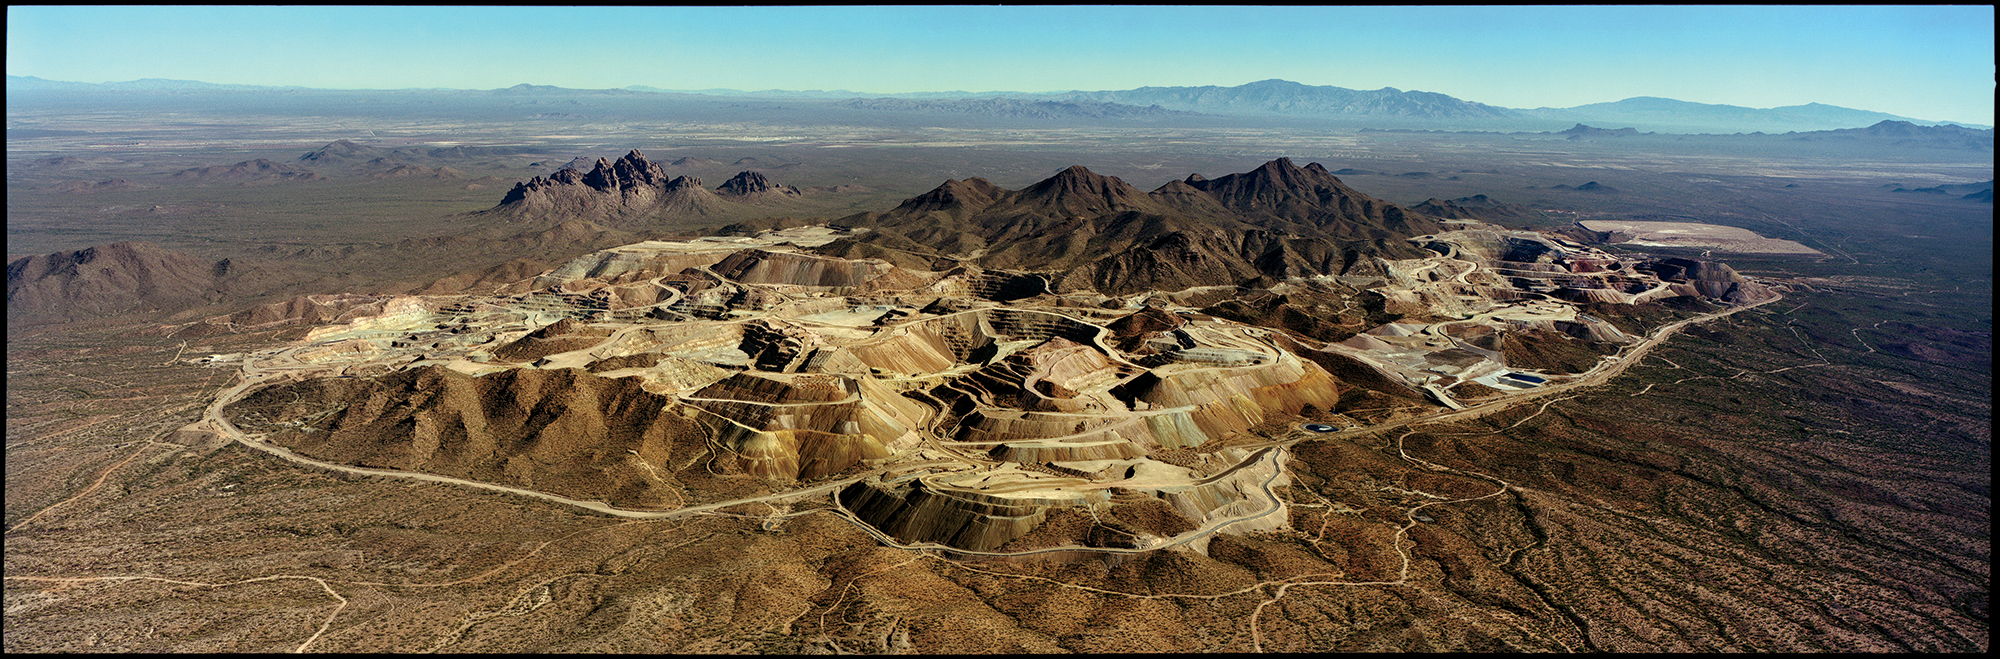 An aerial view of the Silver Bell mine, operated by Asarco, in southern Arizona